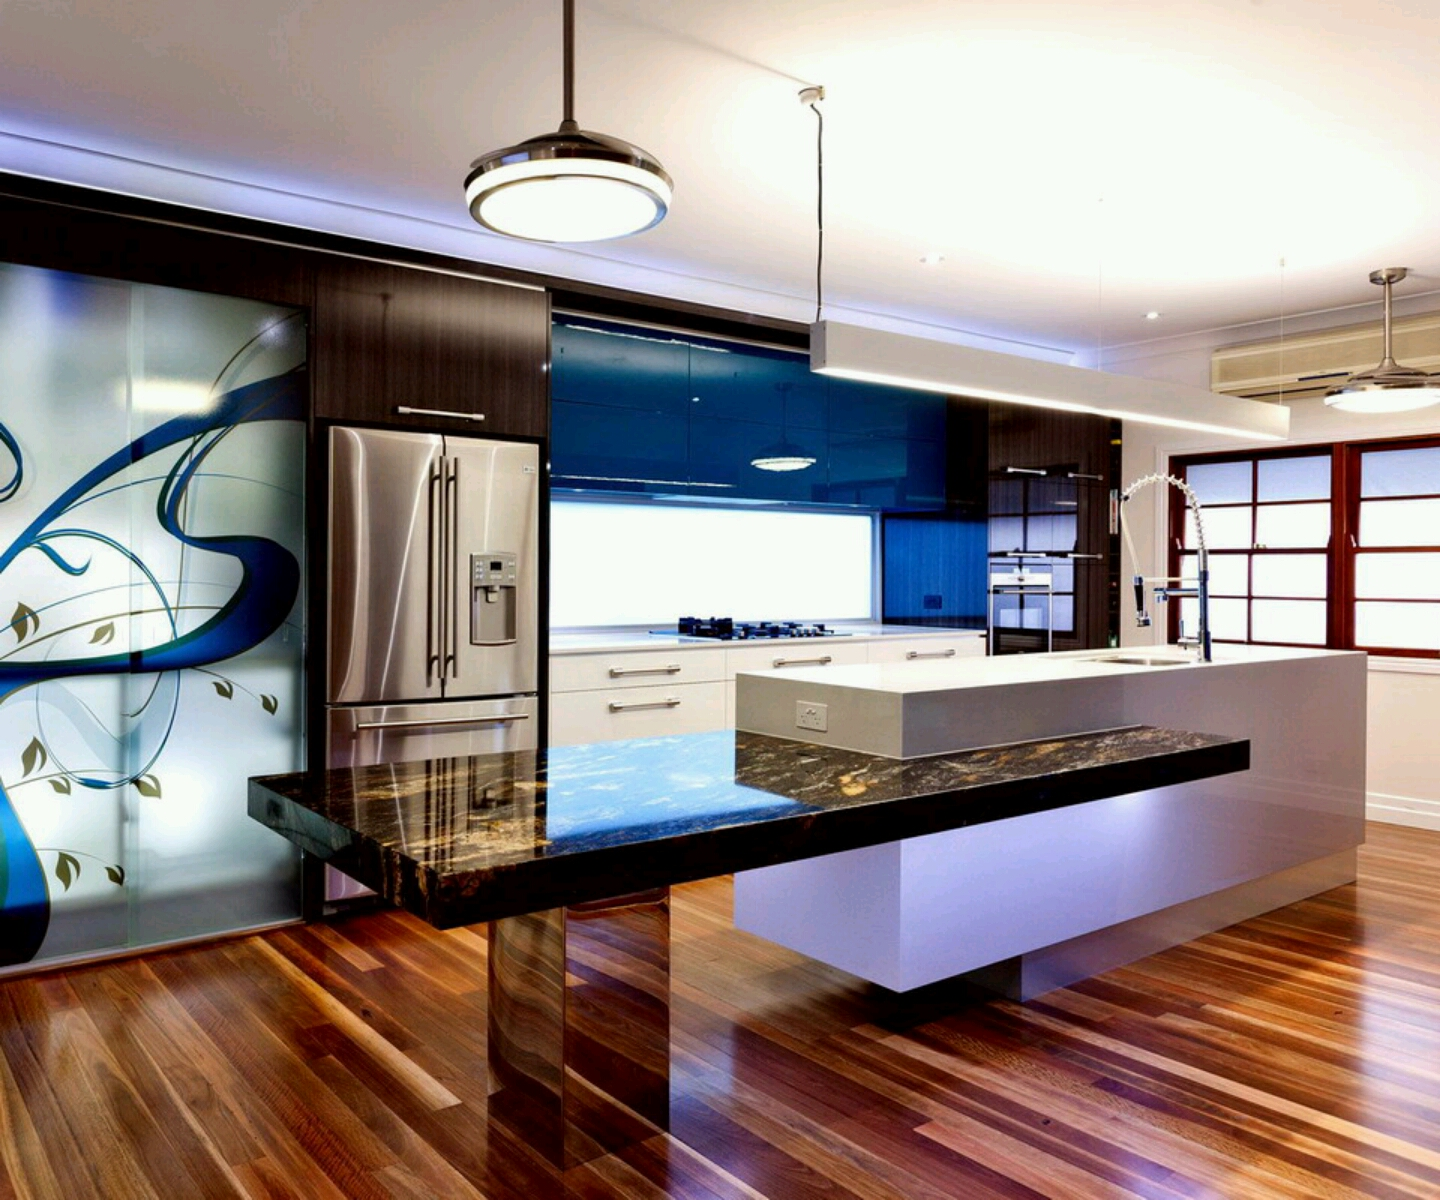 New House Kitchen Designs: New Home Designs Latest.: Ultra Modern Kitchen Designs Ideas